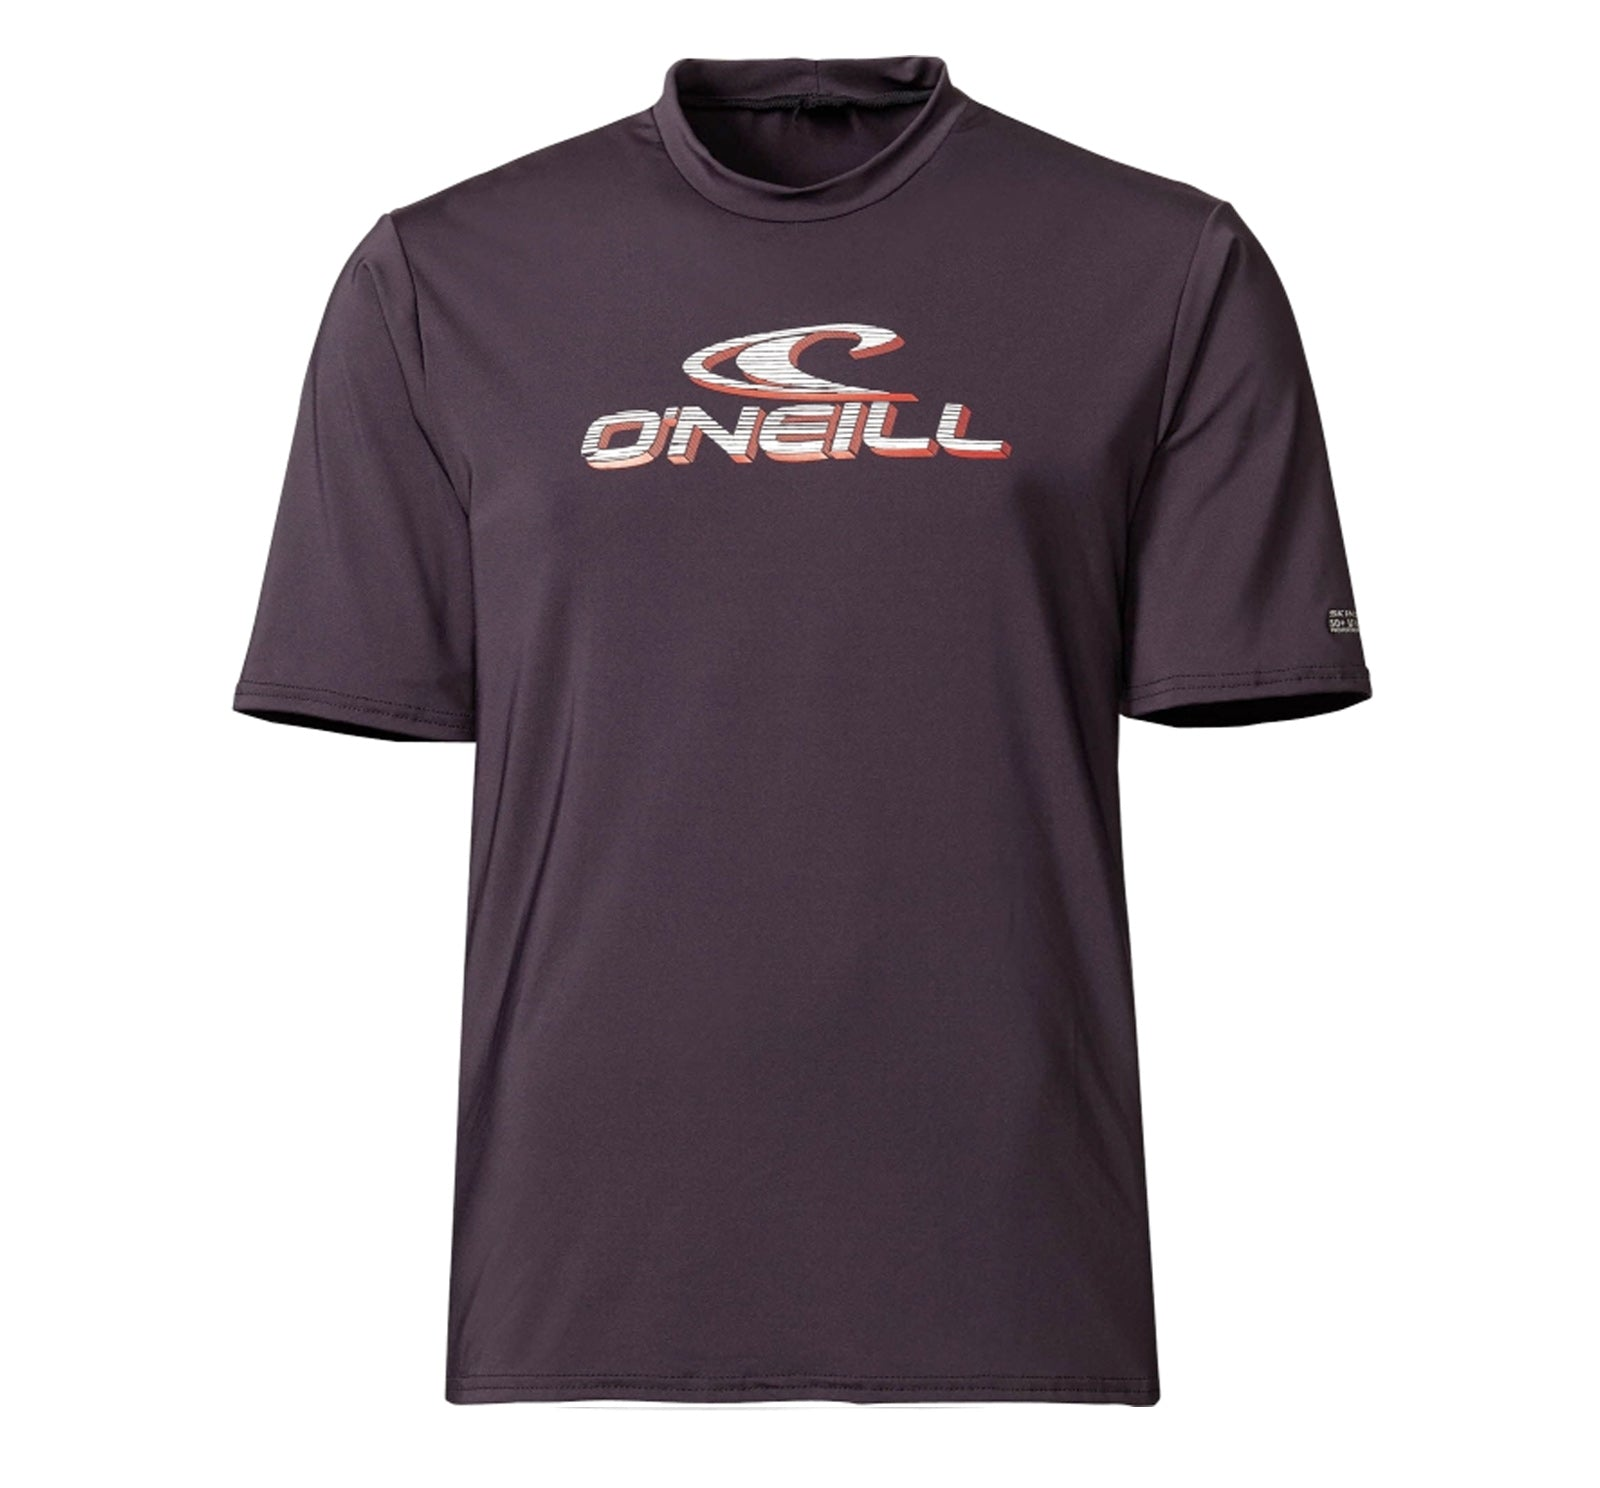 O'Neill Team Wave Men's S/S Rashguard